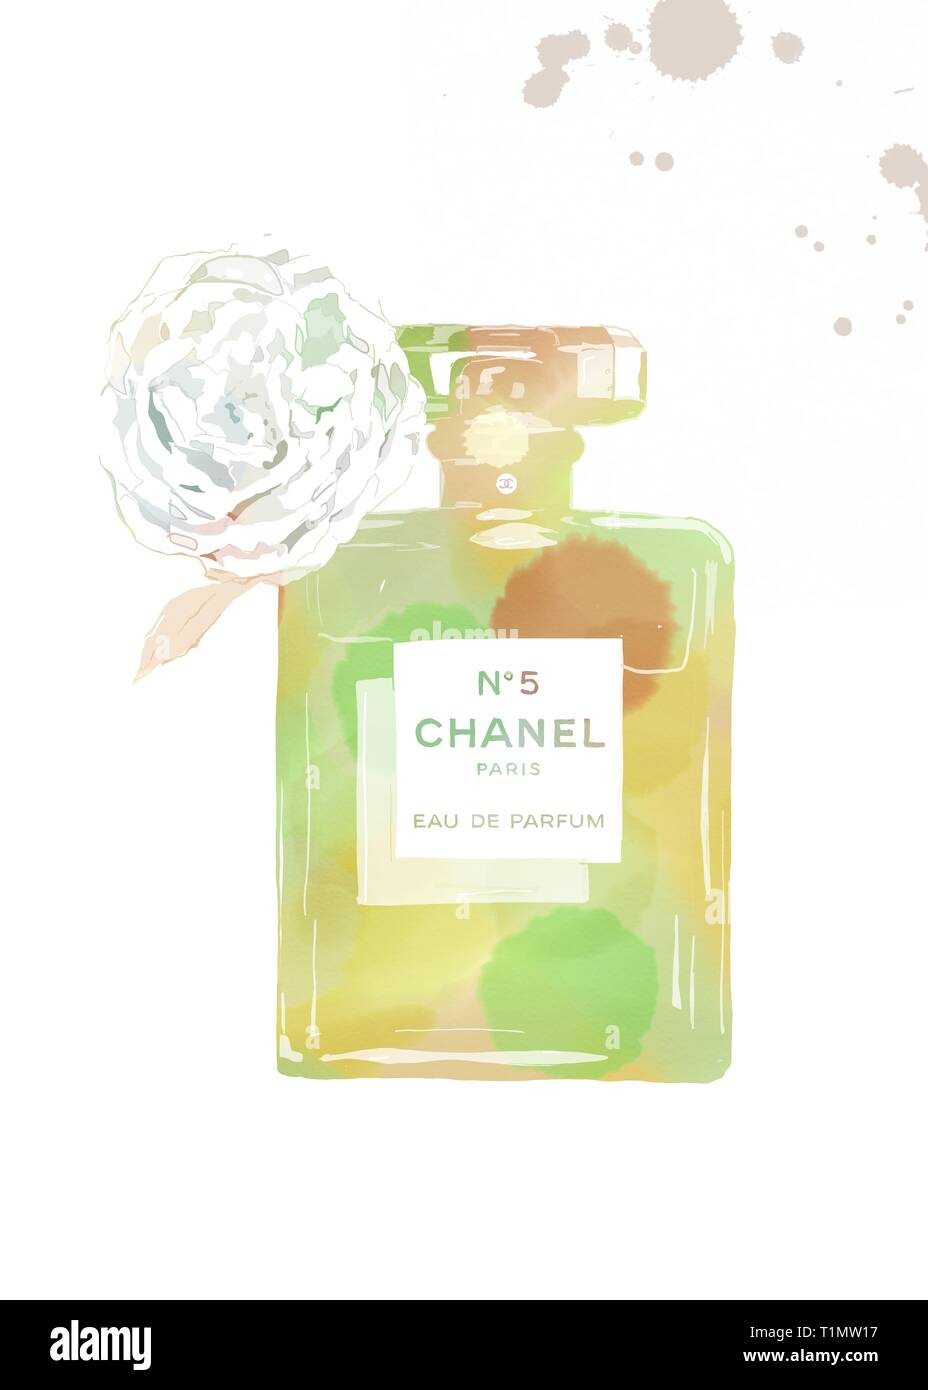 Coco Chanel Perfume Stock Photos Coco Chanel Perfume Stock Images